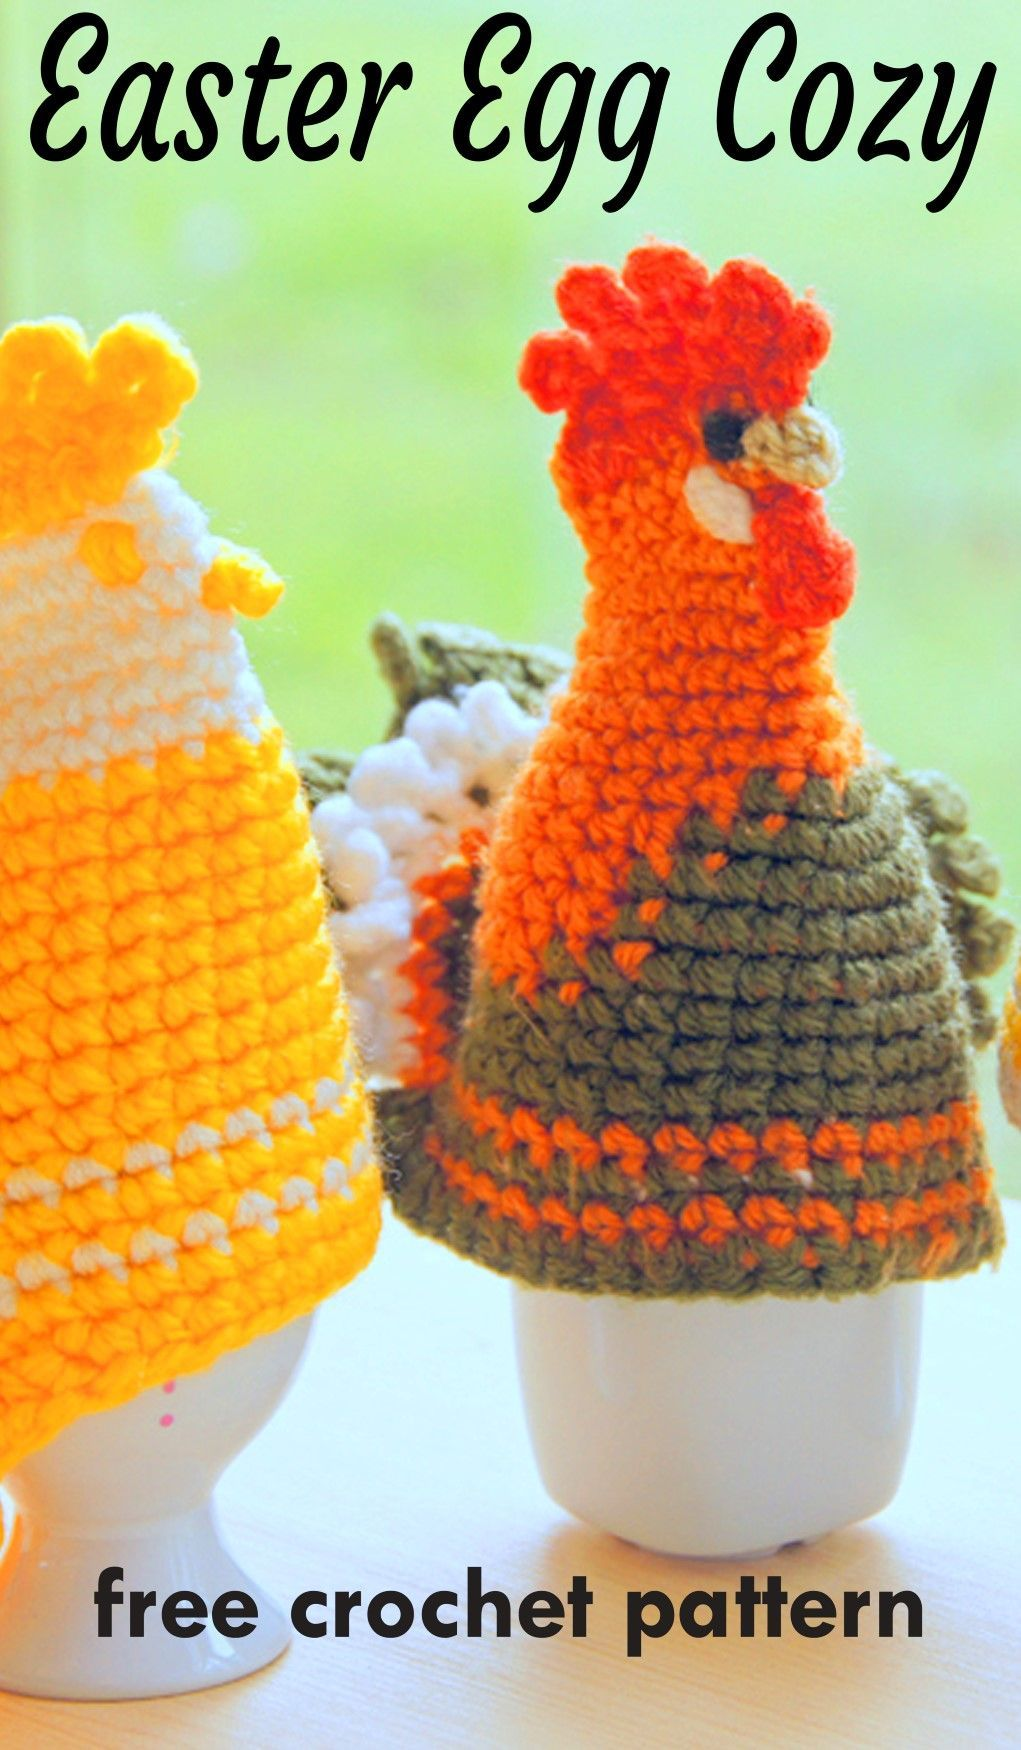 Easter Egg Cozies Free Crochet Patterns Crochet Crochet